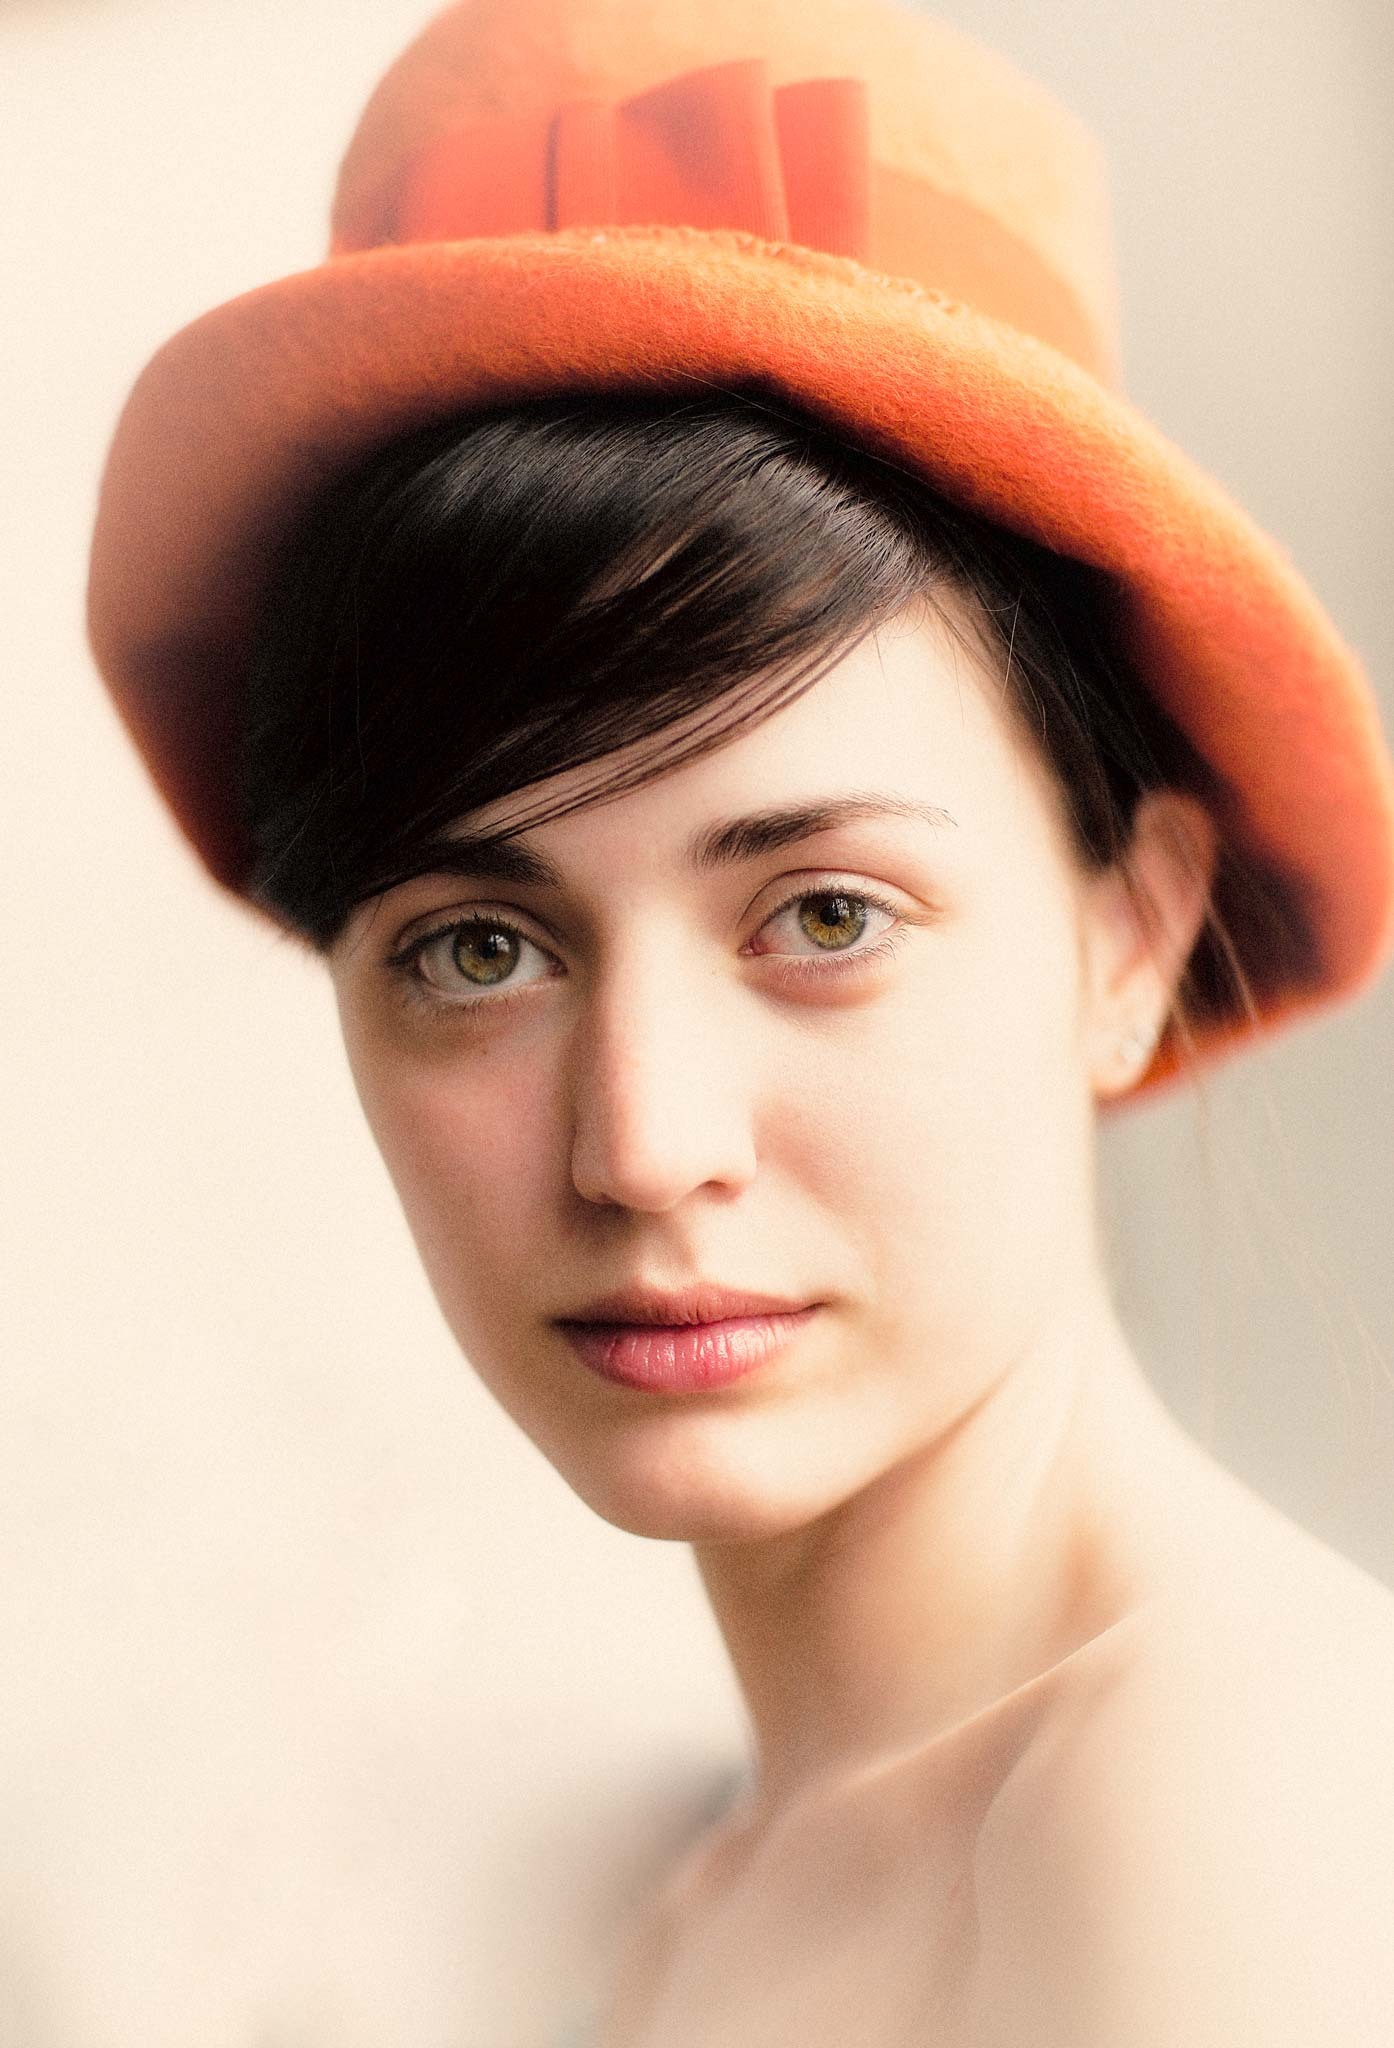 0901_dwpp-beauty_orange-hat_1493-w